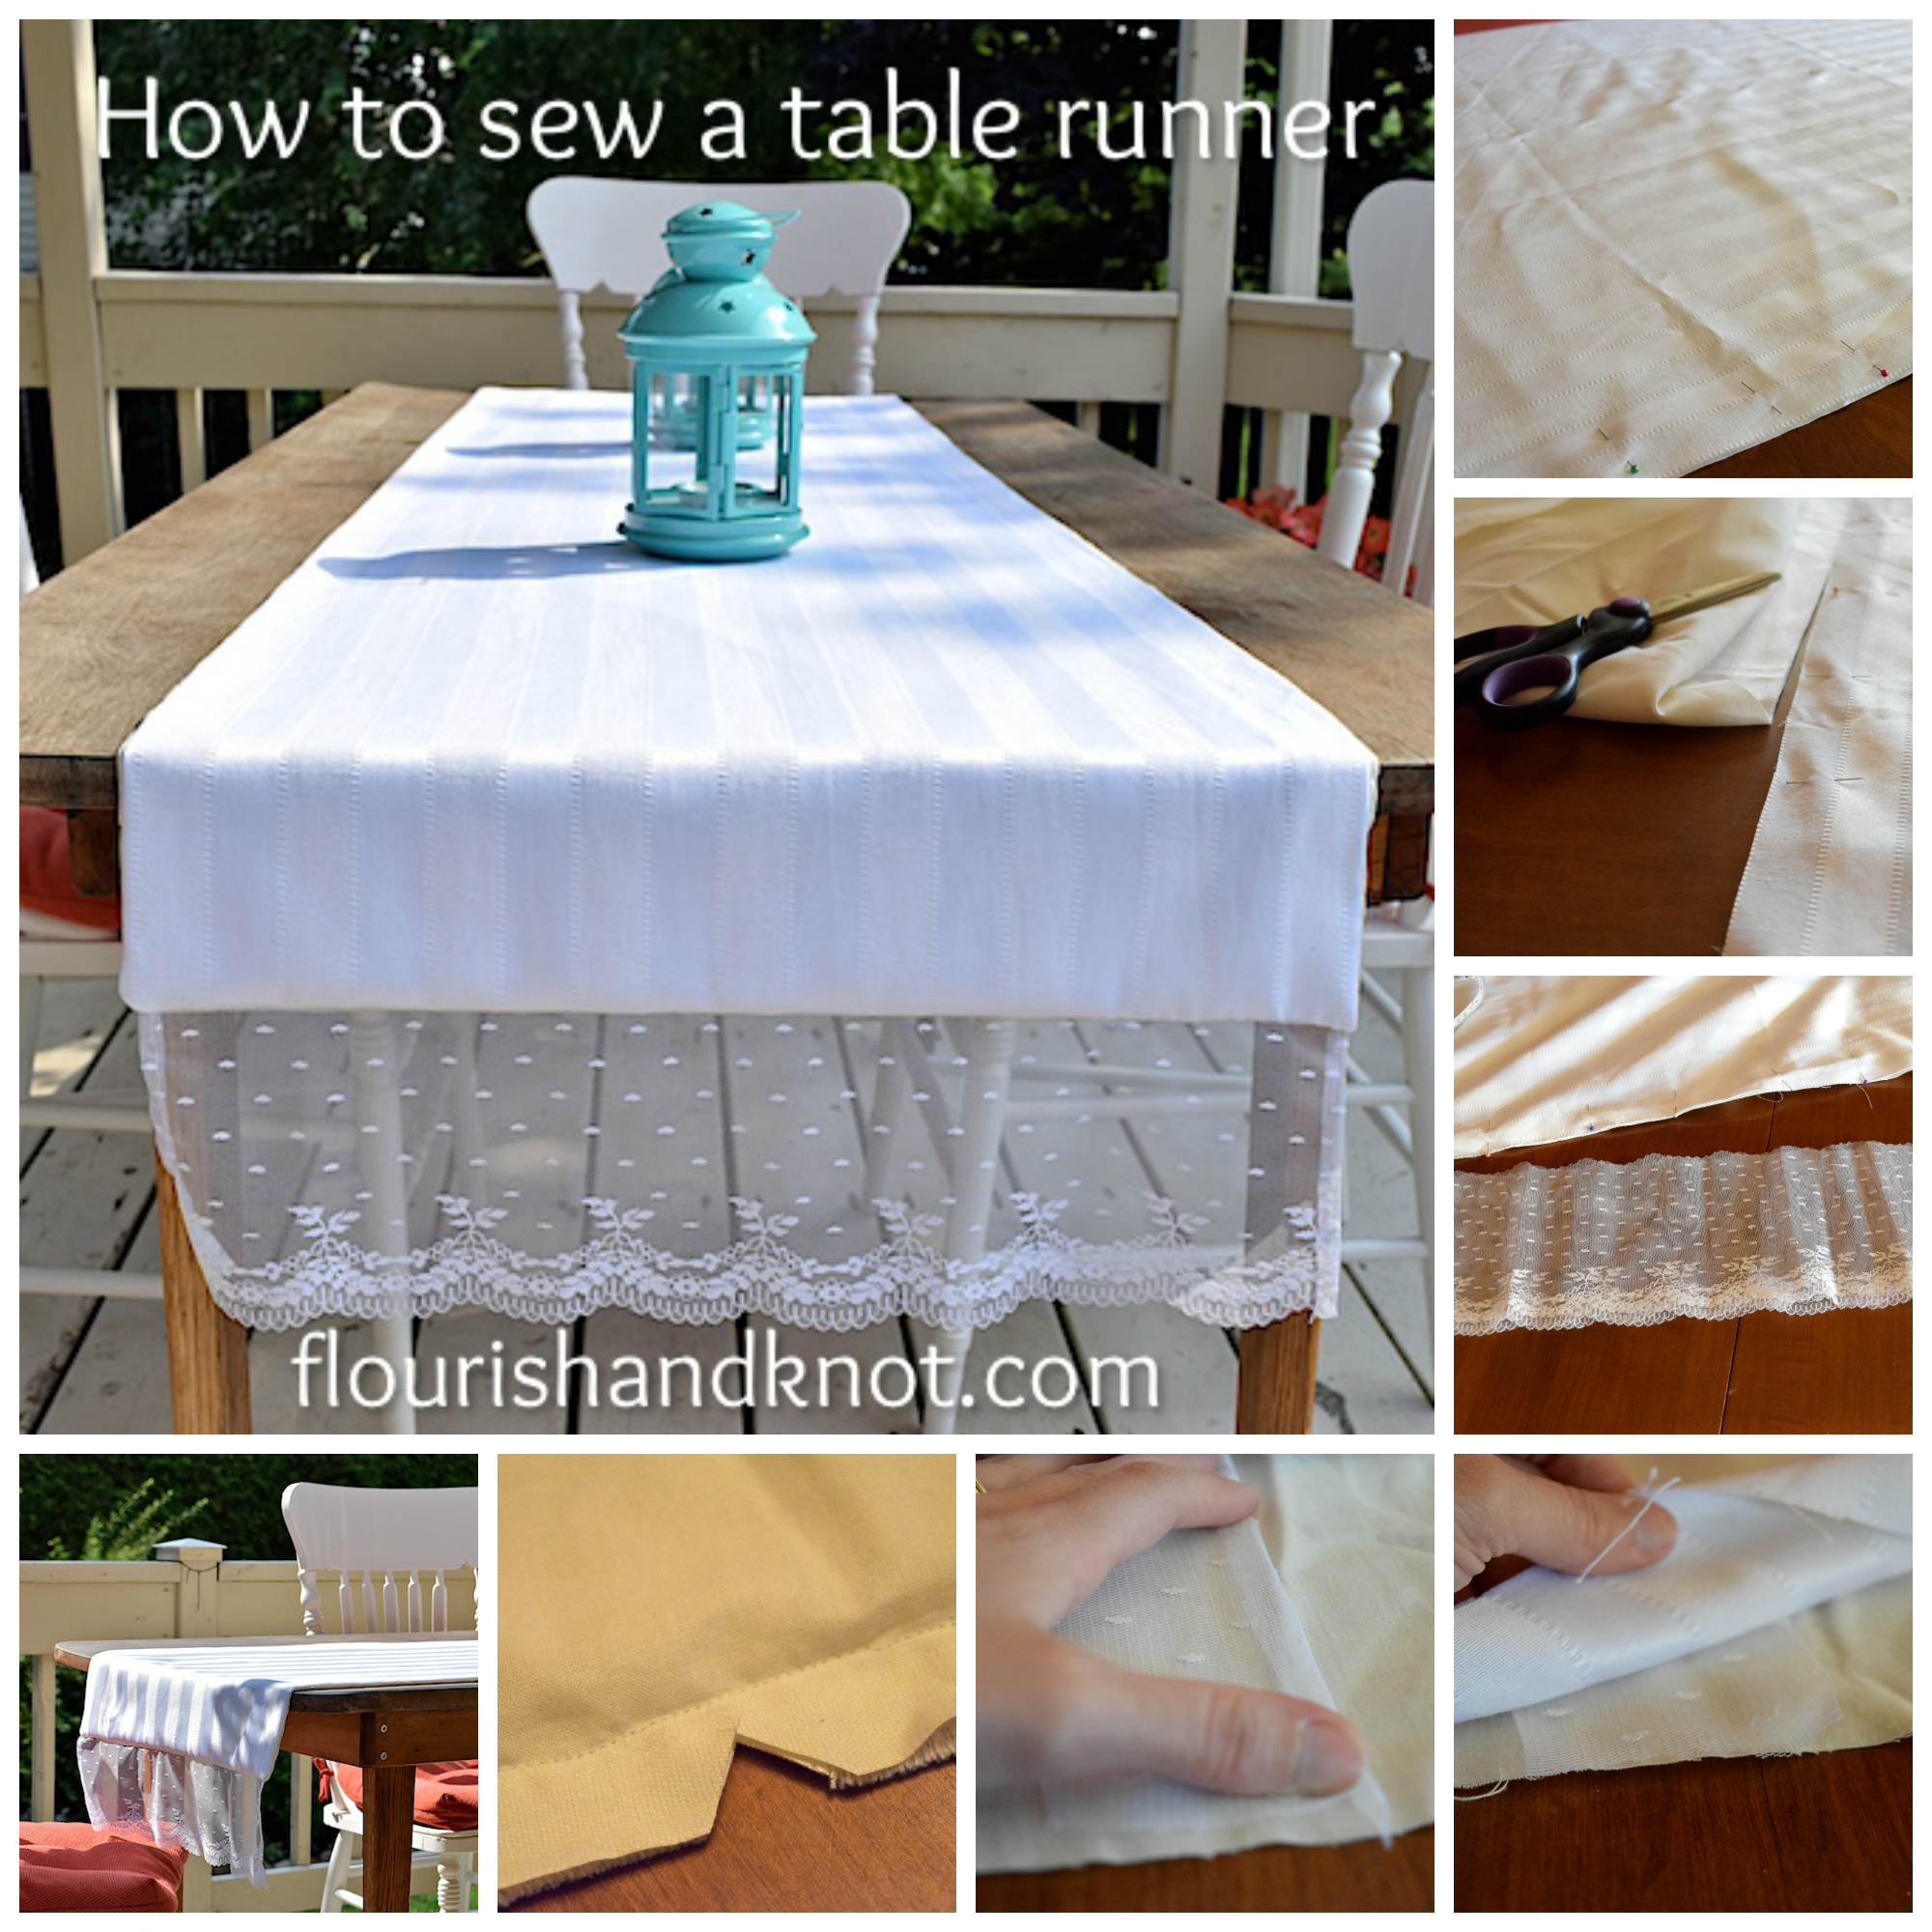 How to sew a table runner - How To Sew A Simple Table Runner Flourishandknot Com